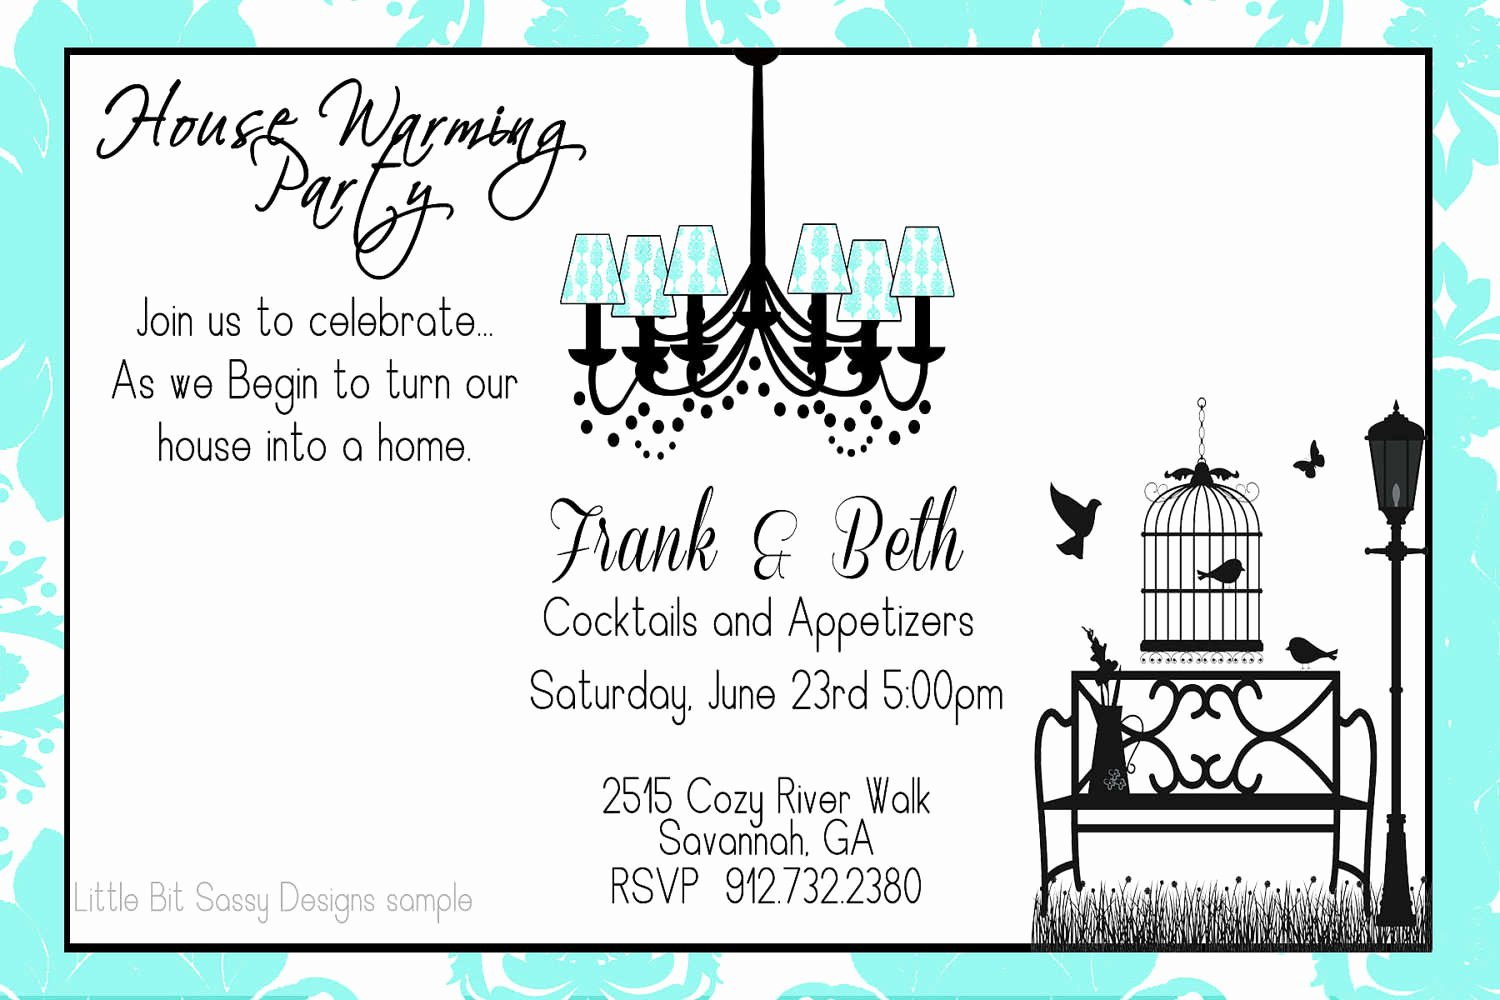 Housewarming Party Invitation Template New Housewarming Party Invitations Template